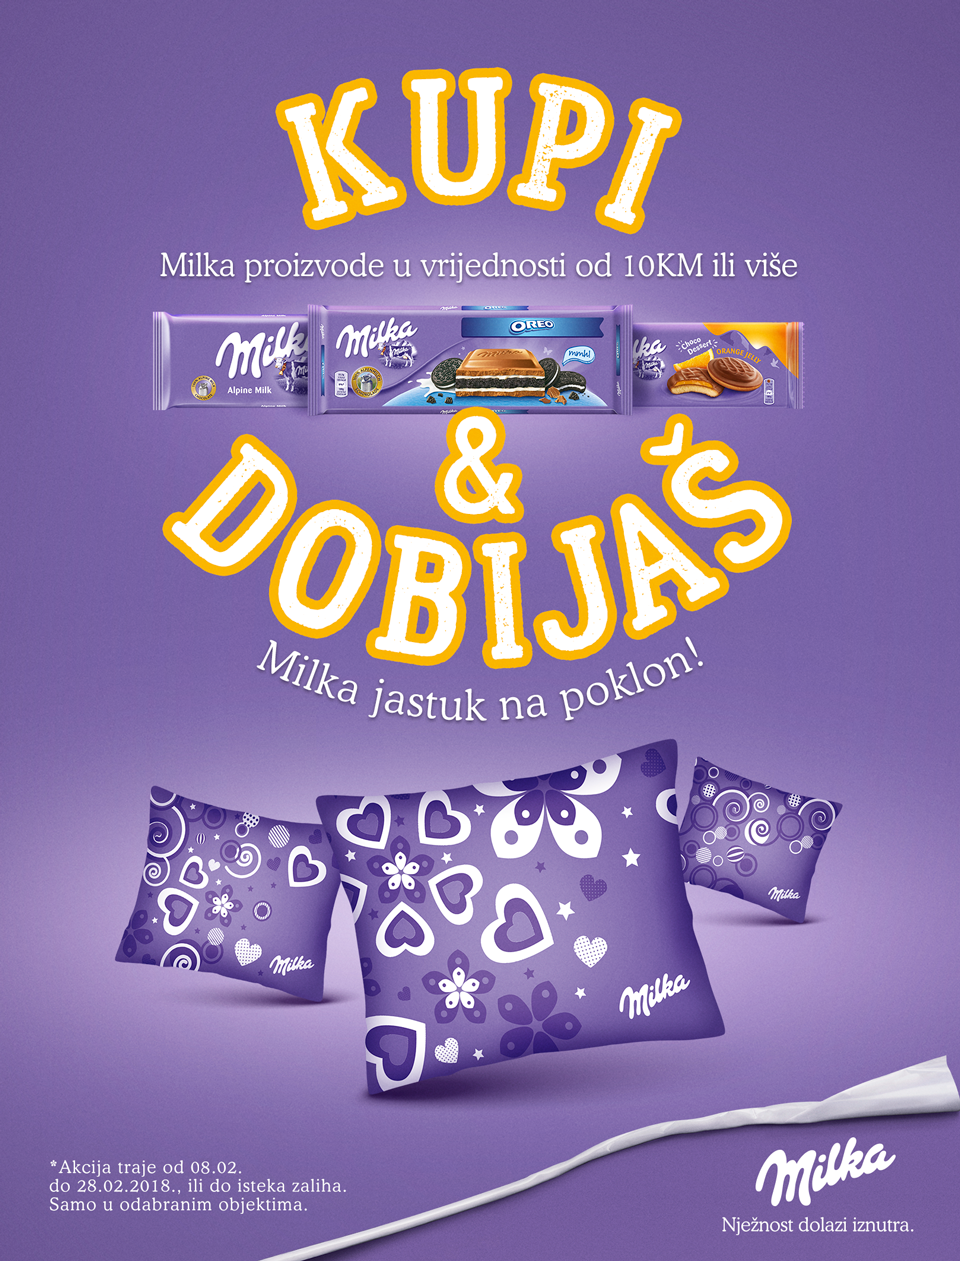 Milka-Umbrella-katalog-137x180-preview-2